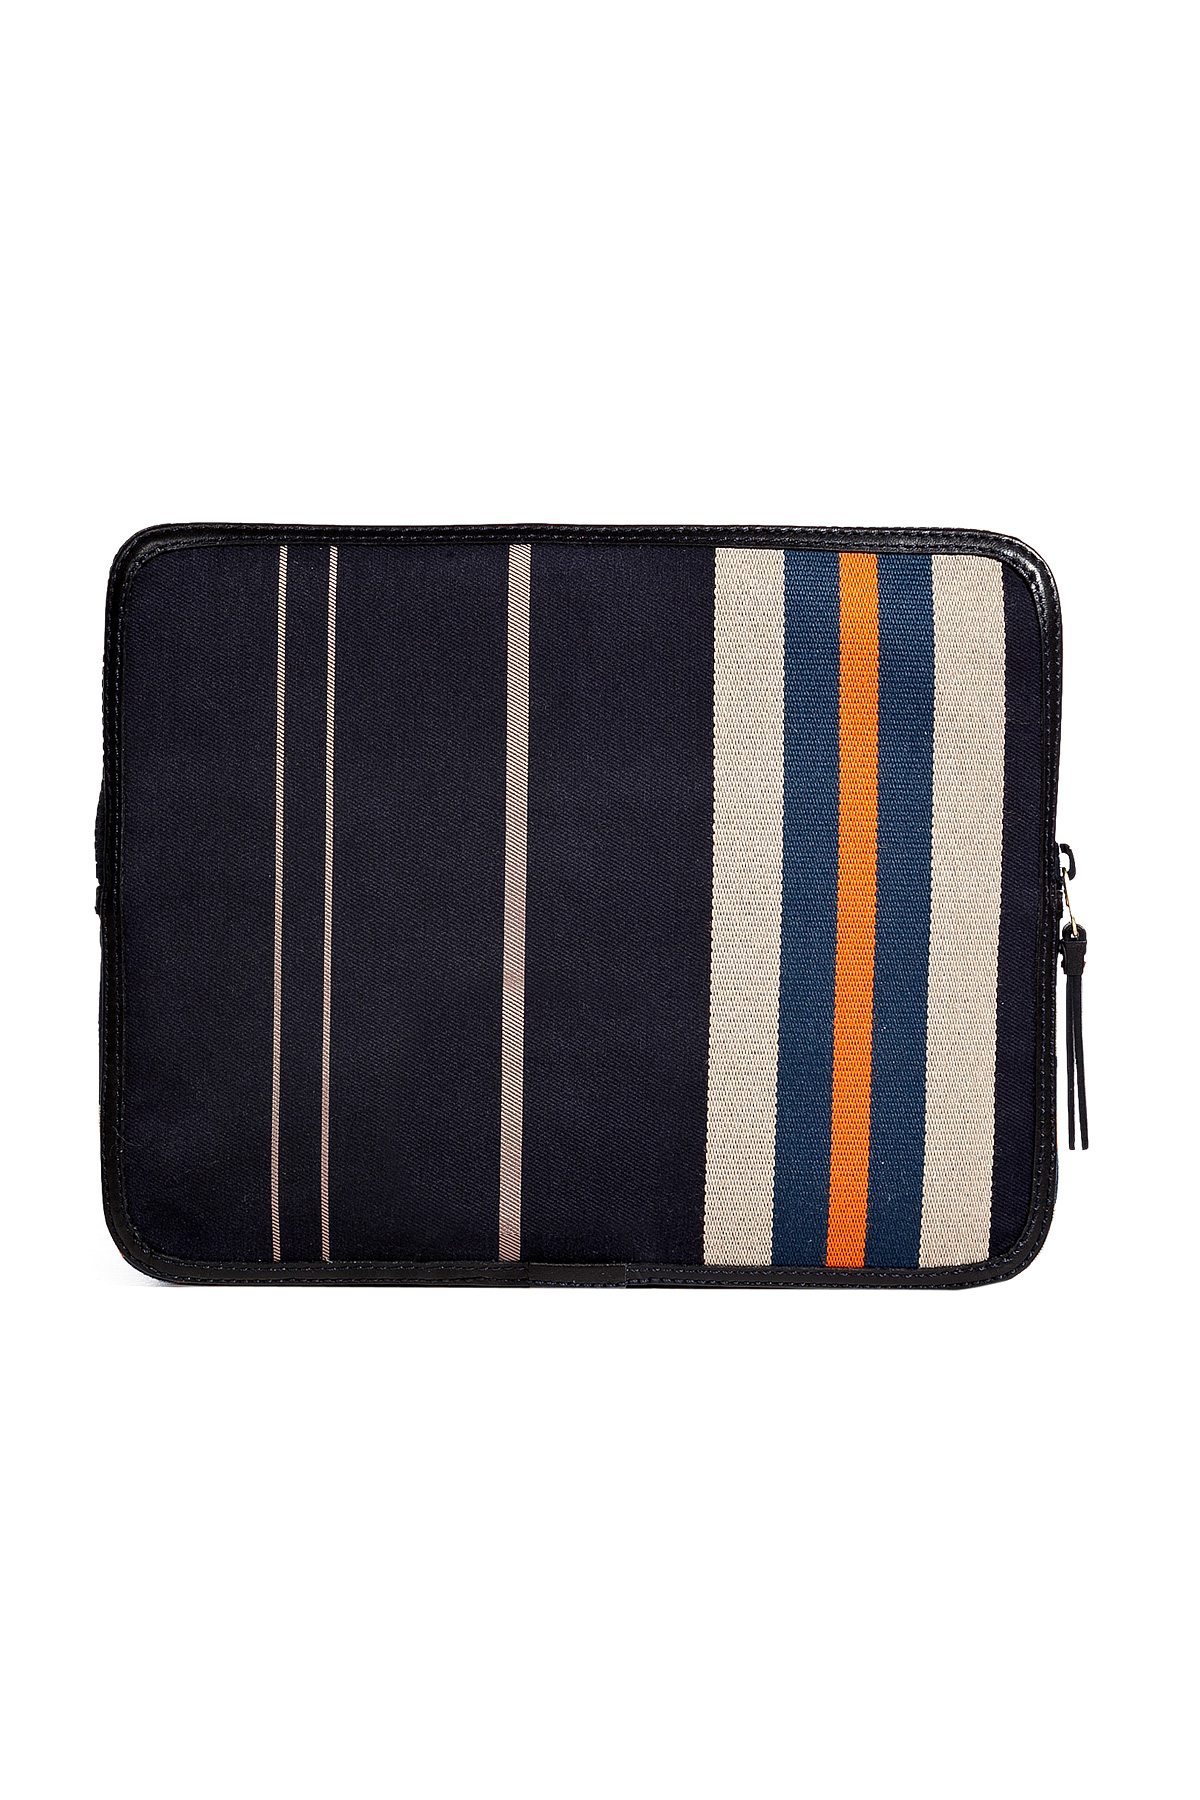 paul smith striped ipad case in purple for men lyst. Black Bedroom Furniture Sets. Home Design Ideas